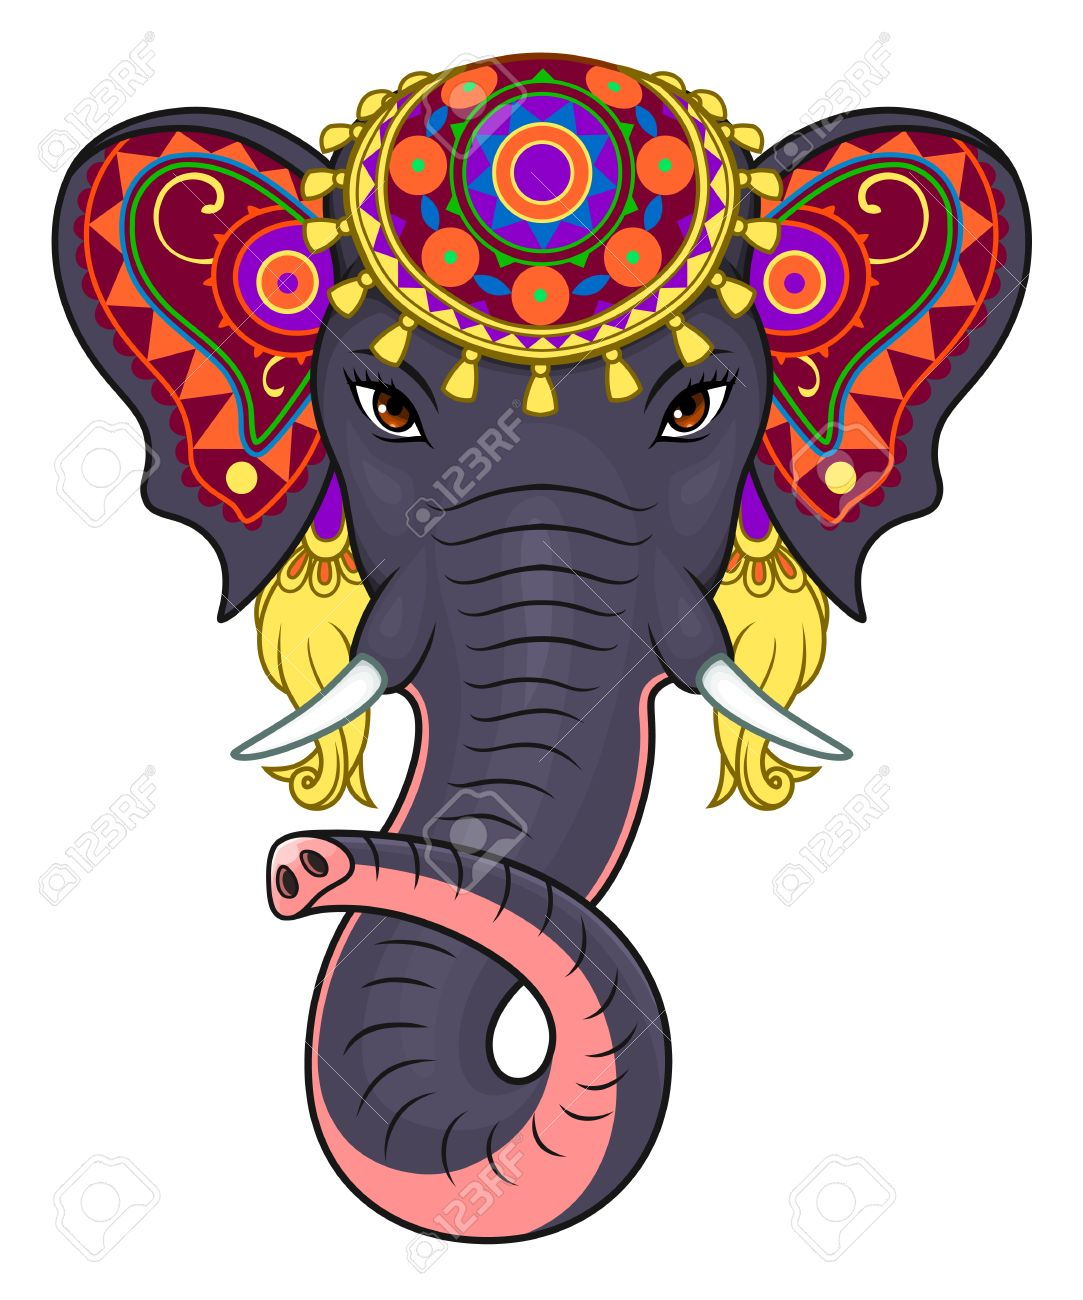 Indian Elephant Face Royalty Free Cliparts, Vectors, And Stock.